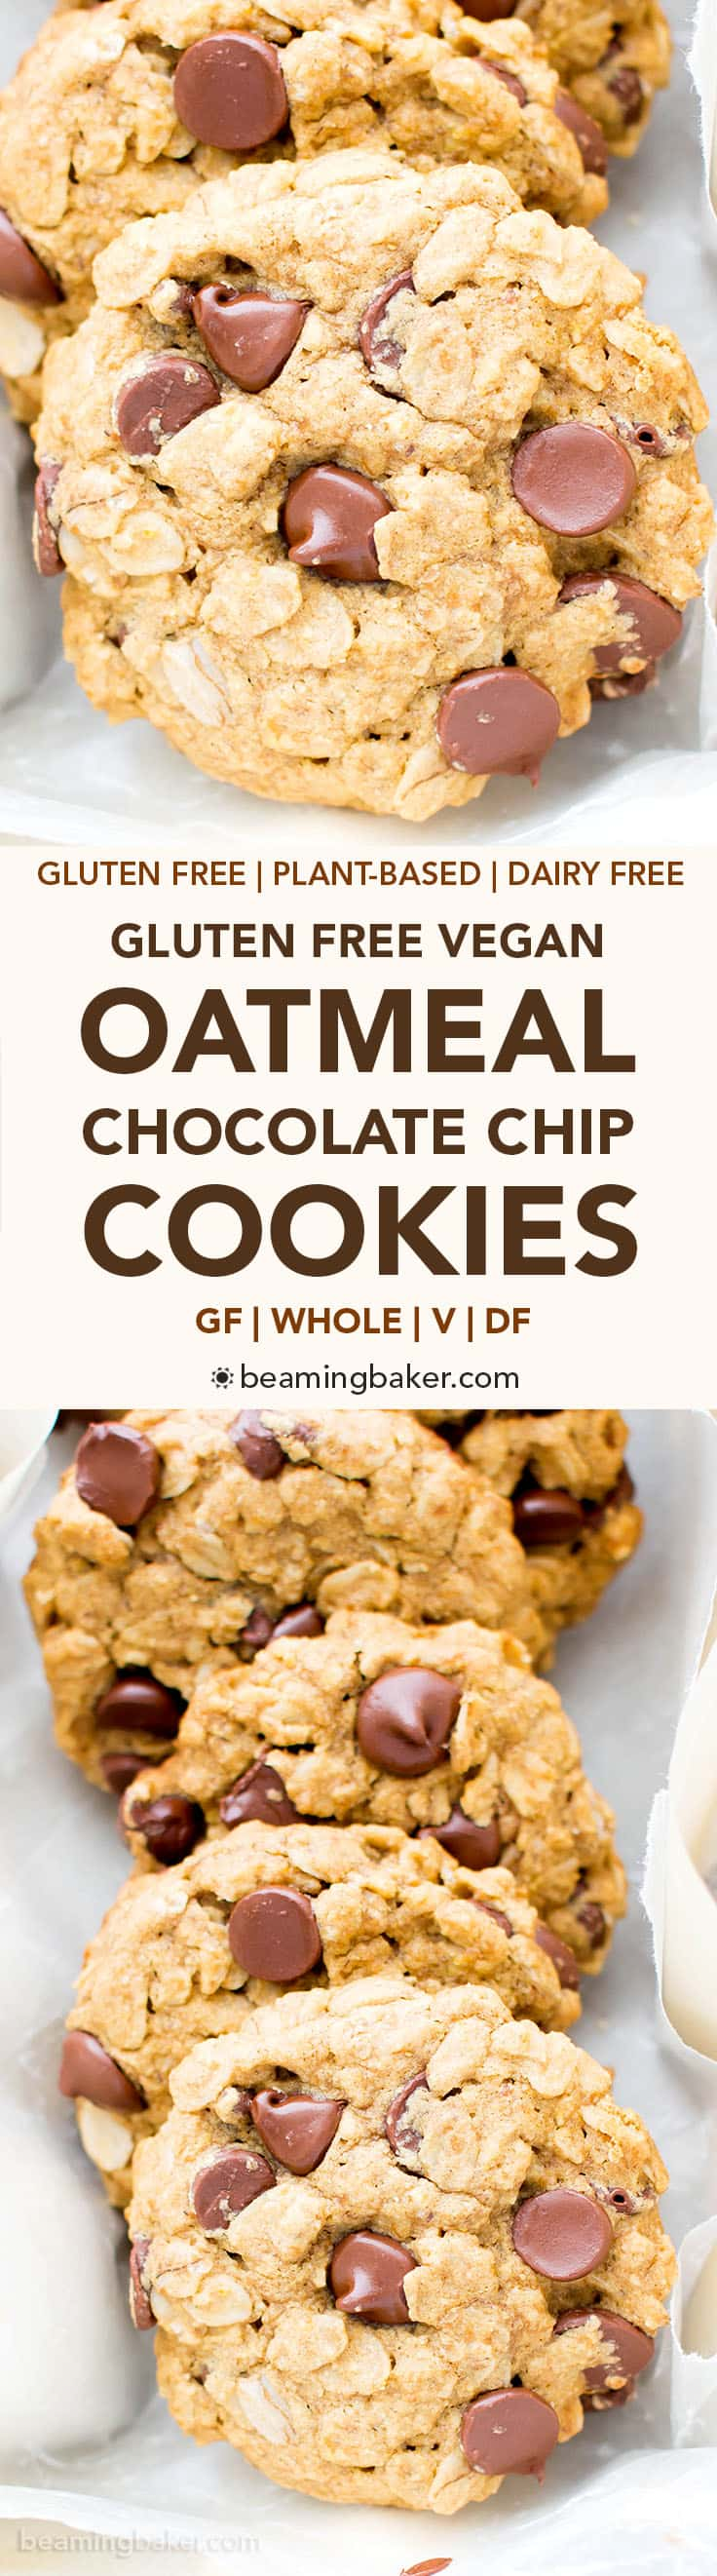 Gluten Free Vegan Oatmeal Chocolate Chip Cookies (GF): a simple vegan oatmeal chocolate chip cookies recipe that yields soft & buttery oatmeal cookies packed with melty chocolate chips! Dairy-Free, Refined Sugar-Free. #OatmealCookies #GlutenFree #Vegan #ChocolateChip | Recipe at BeamingBaker.com